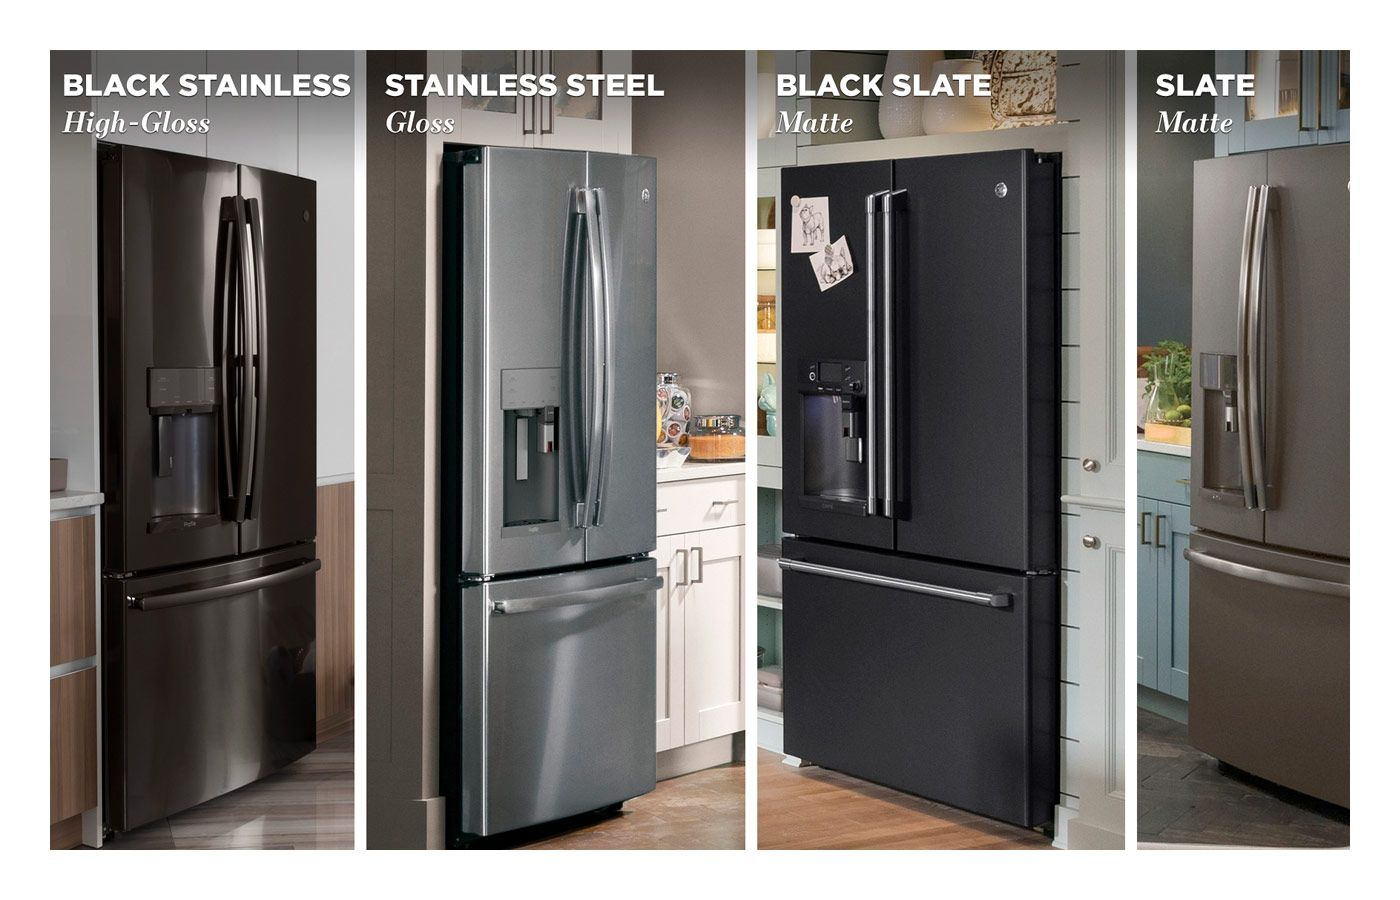 Premium Appliance Finishes In Stainless Steel Black Stainless Slate And Black Slate Slate Appliances Slate Appliances Kitchen Black Stainless Steel Kitchen